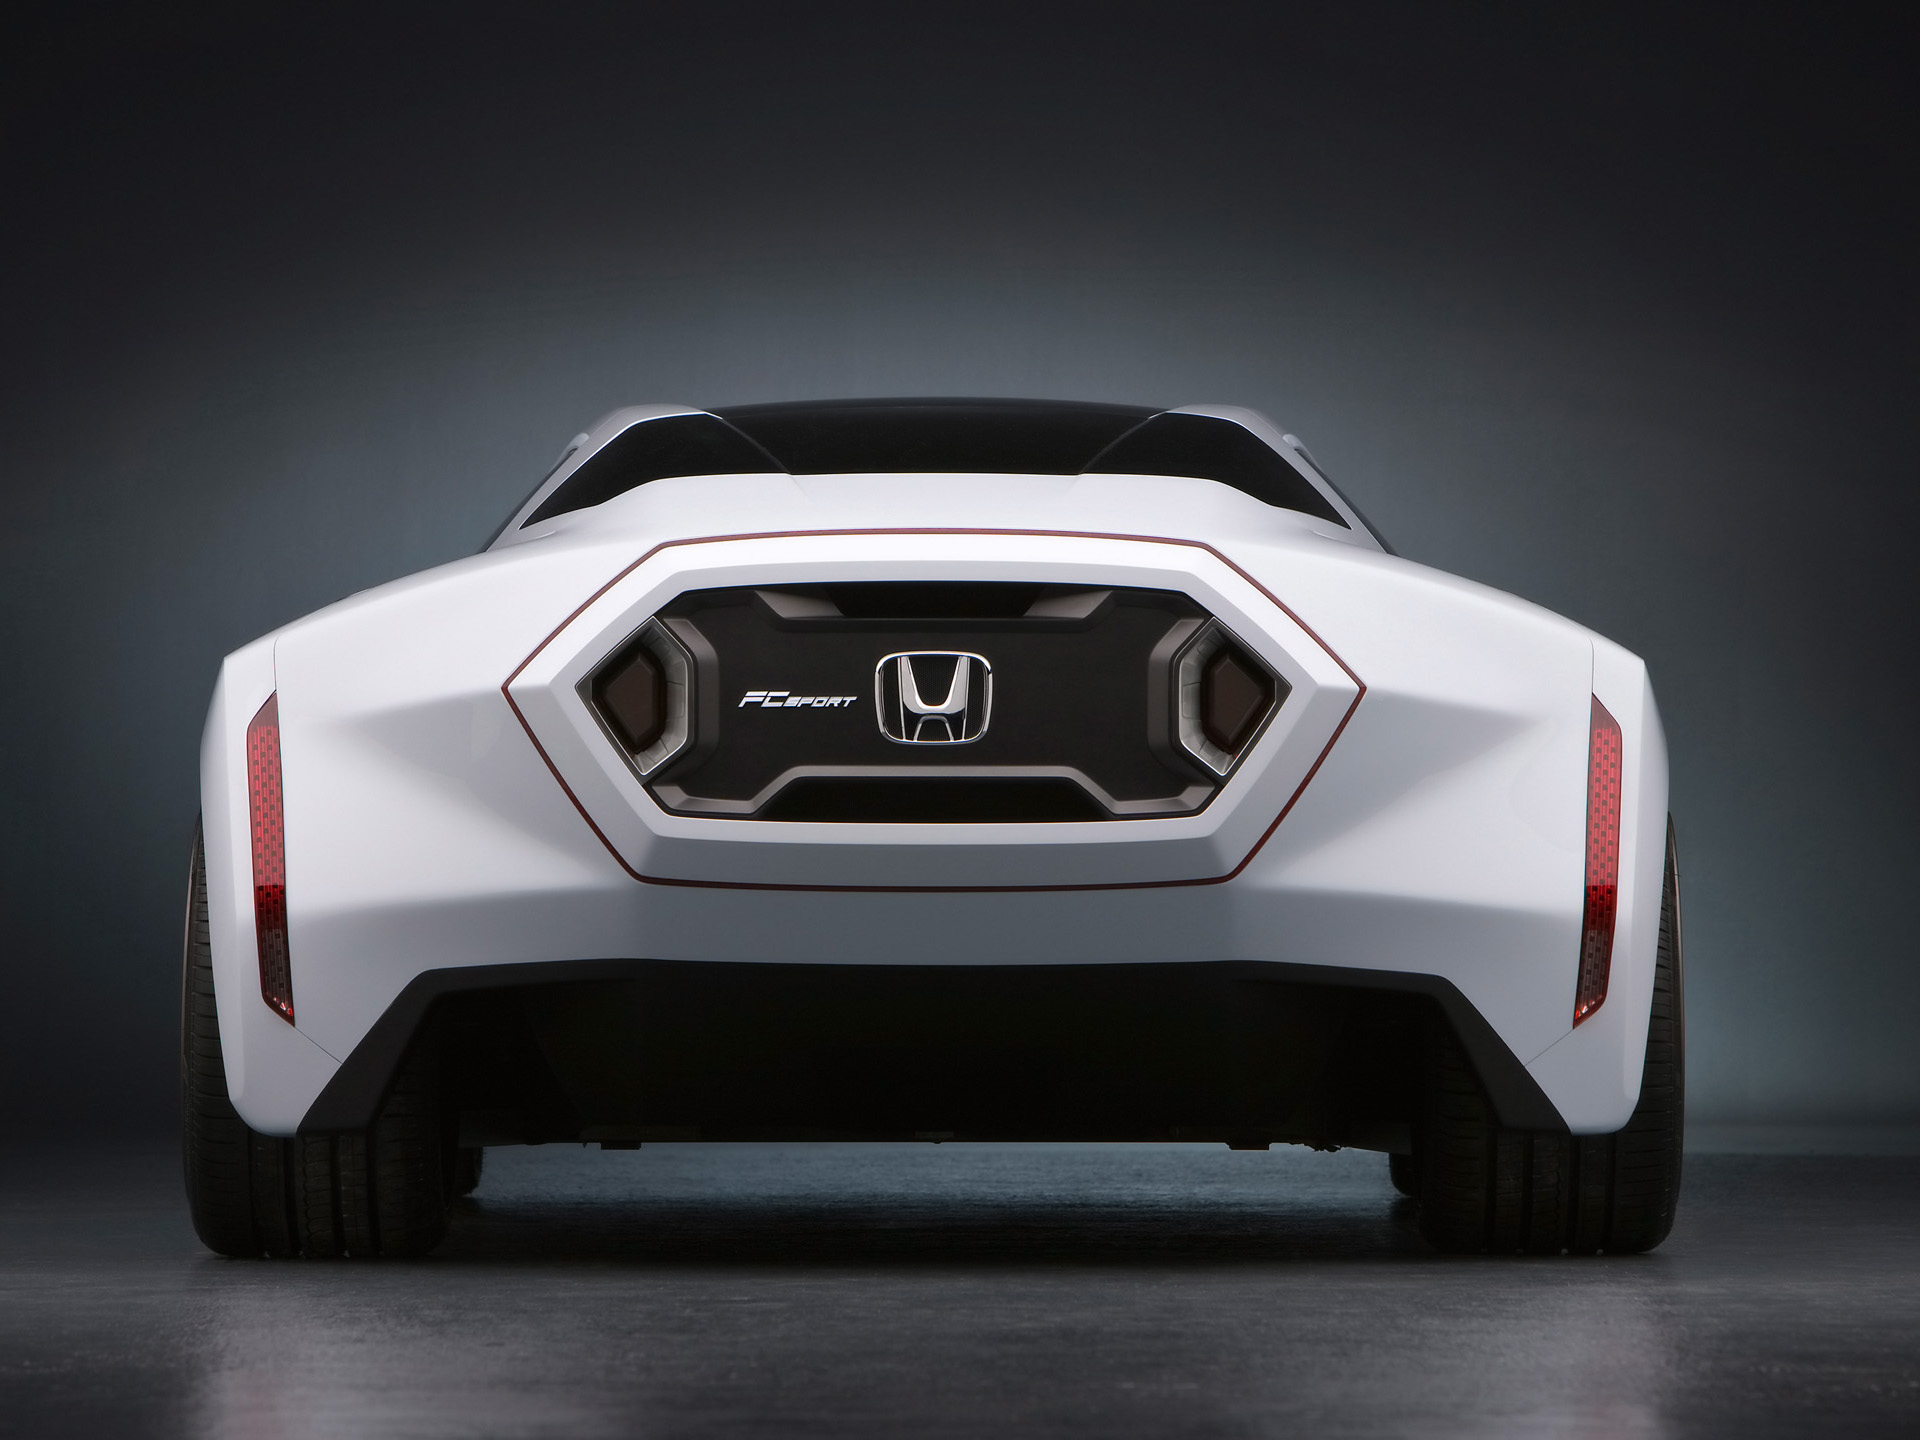 HONDA FC REAR WALLPAPERS Auto Desktop Wallpapers